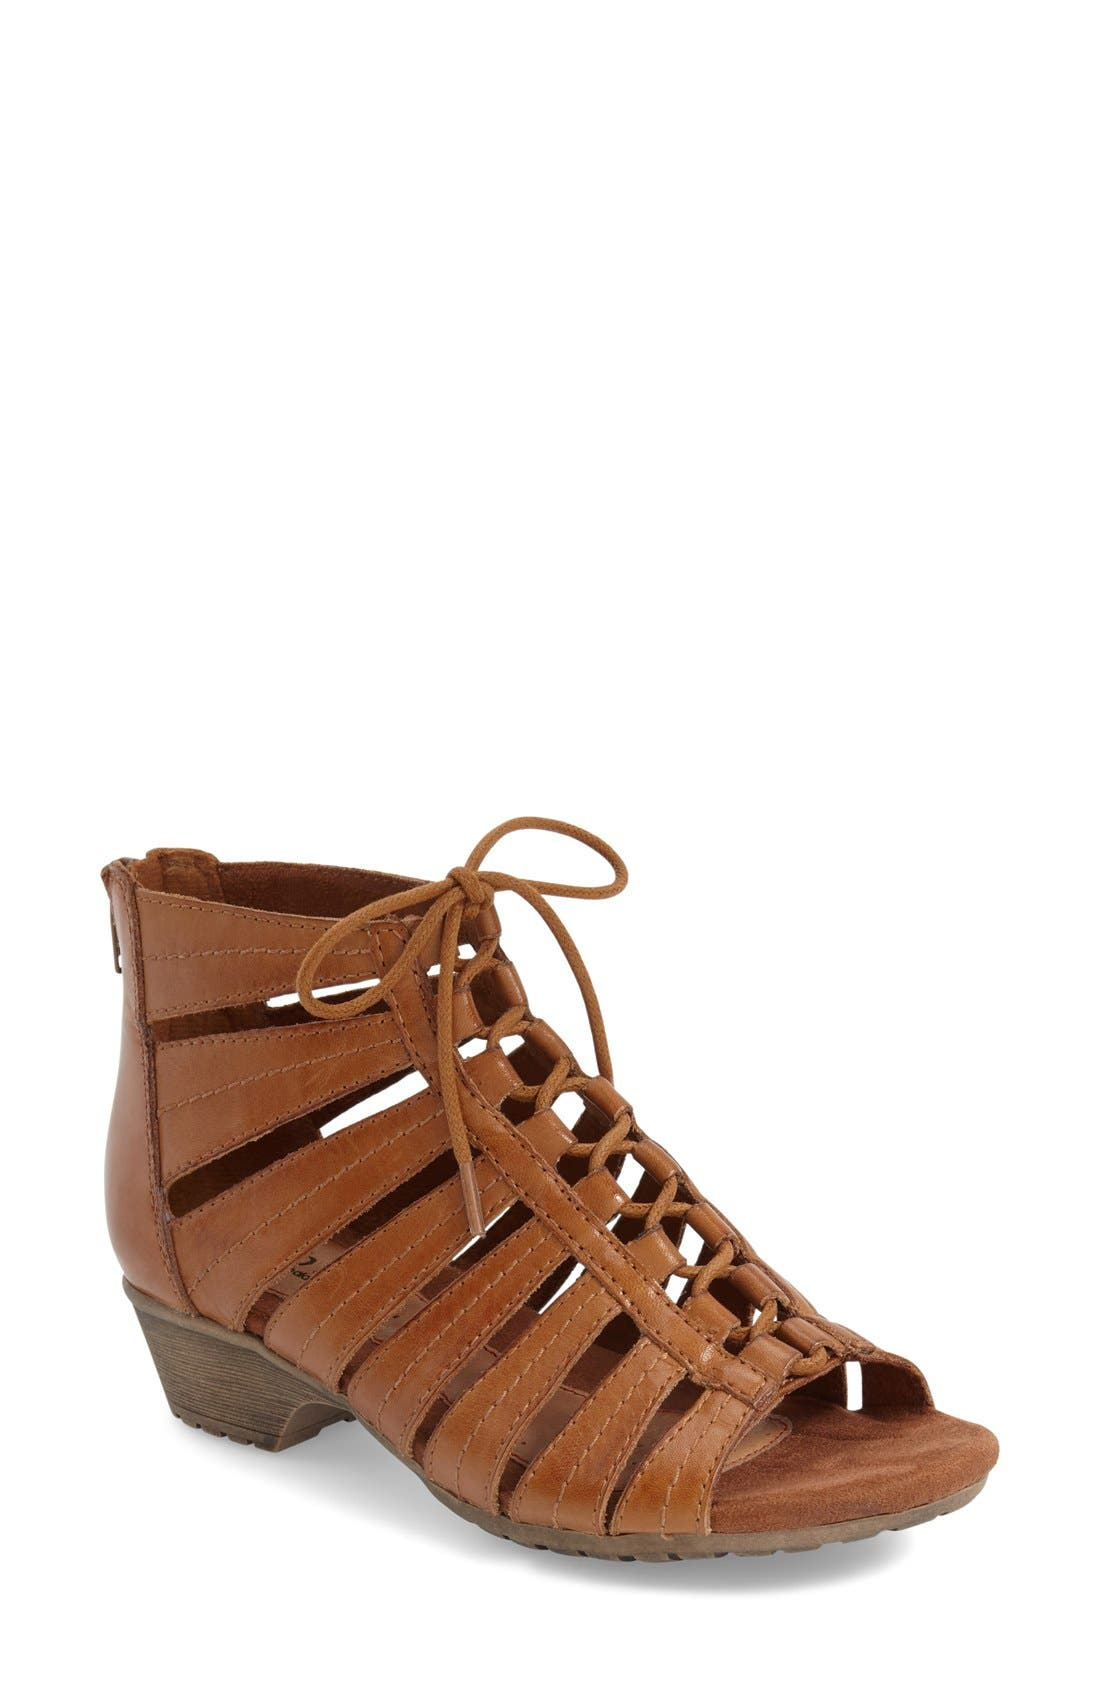 'Gabby' Lace-Up Sandal,                             Main thumbnail 5, color,